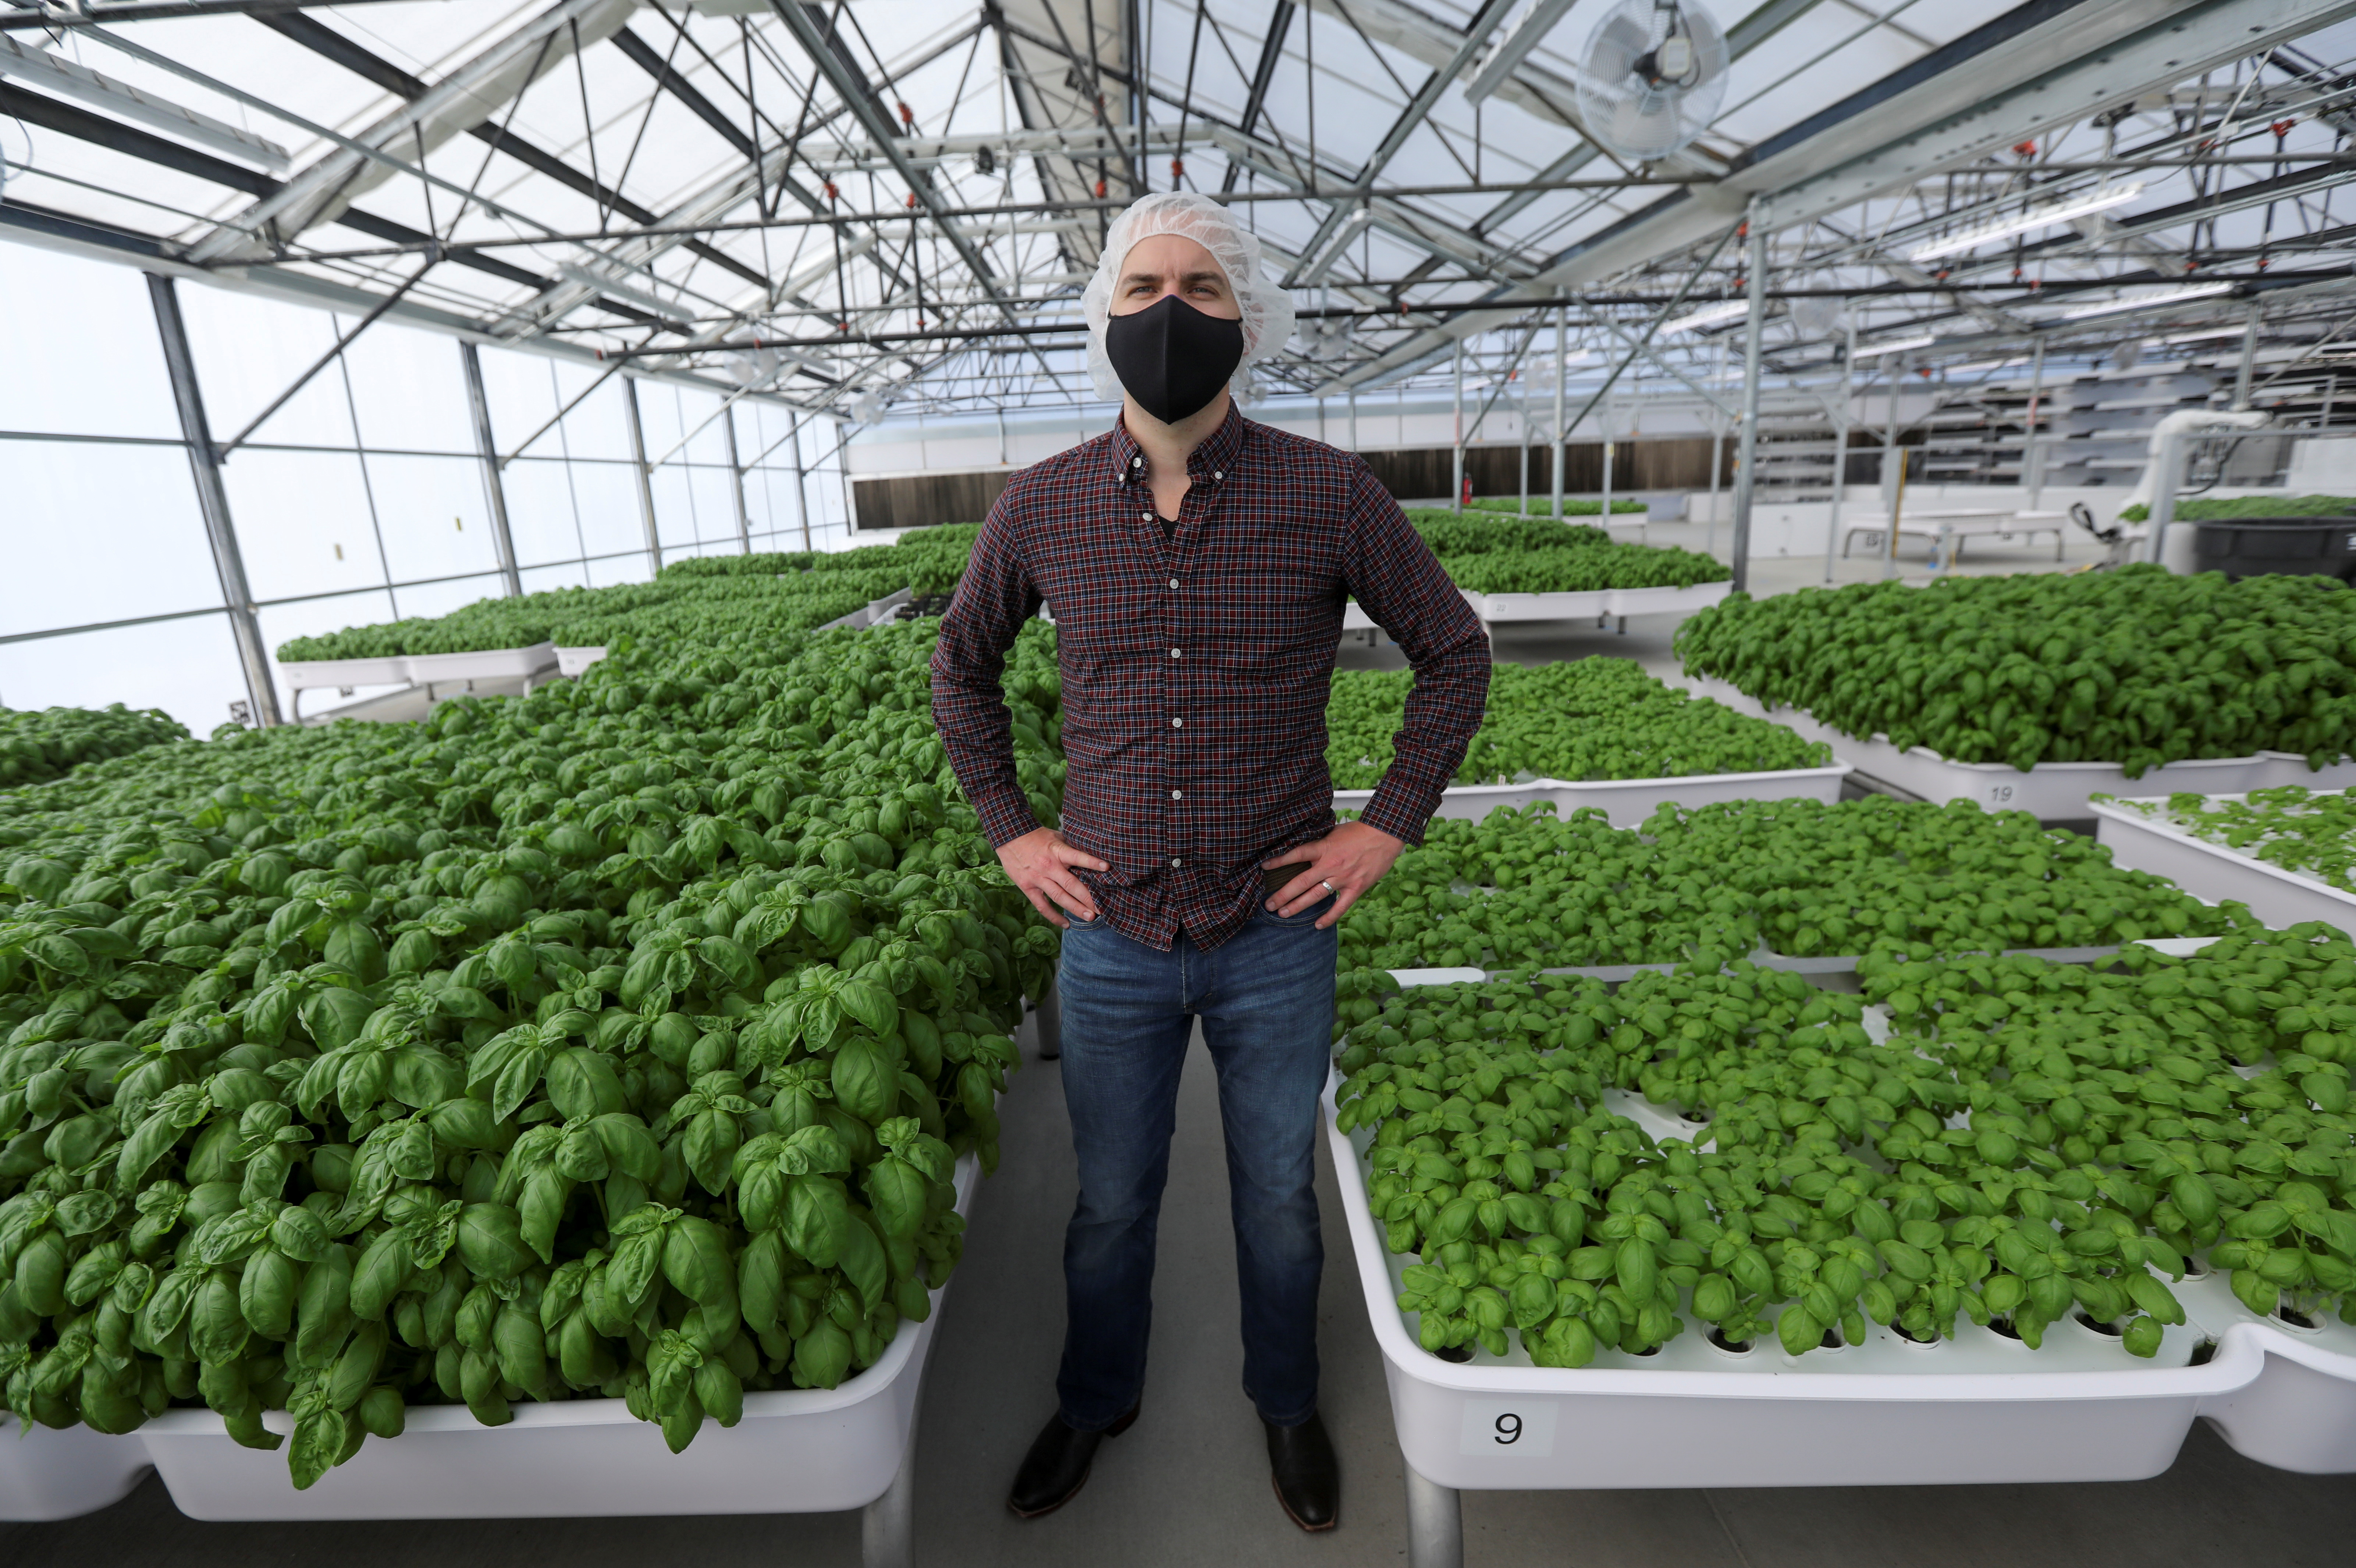 Iron Ox CEO Brandon Alexander poses for a portrait in the company's greenhouse in Gilroy, California, U.S. on September 15, 2021. Picture taken September 15, 2021. REUTERS/Nathan Frandino